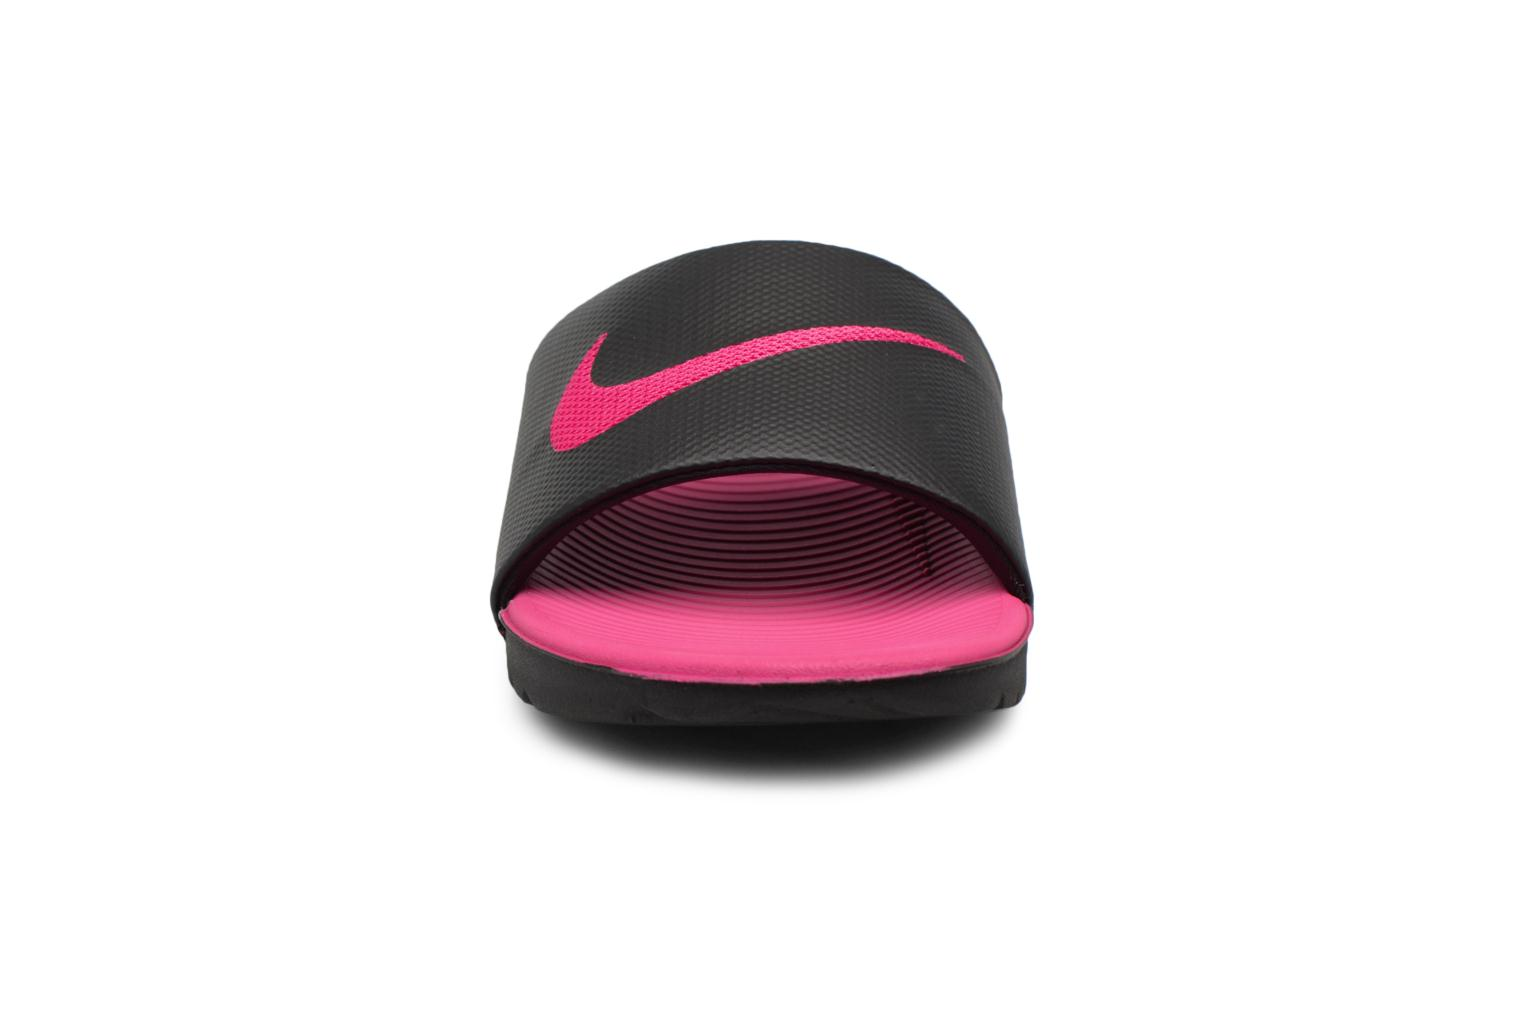 Nike Ps Pink Black Slide Kawa vivid Nike Gs Hgwrq1HR